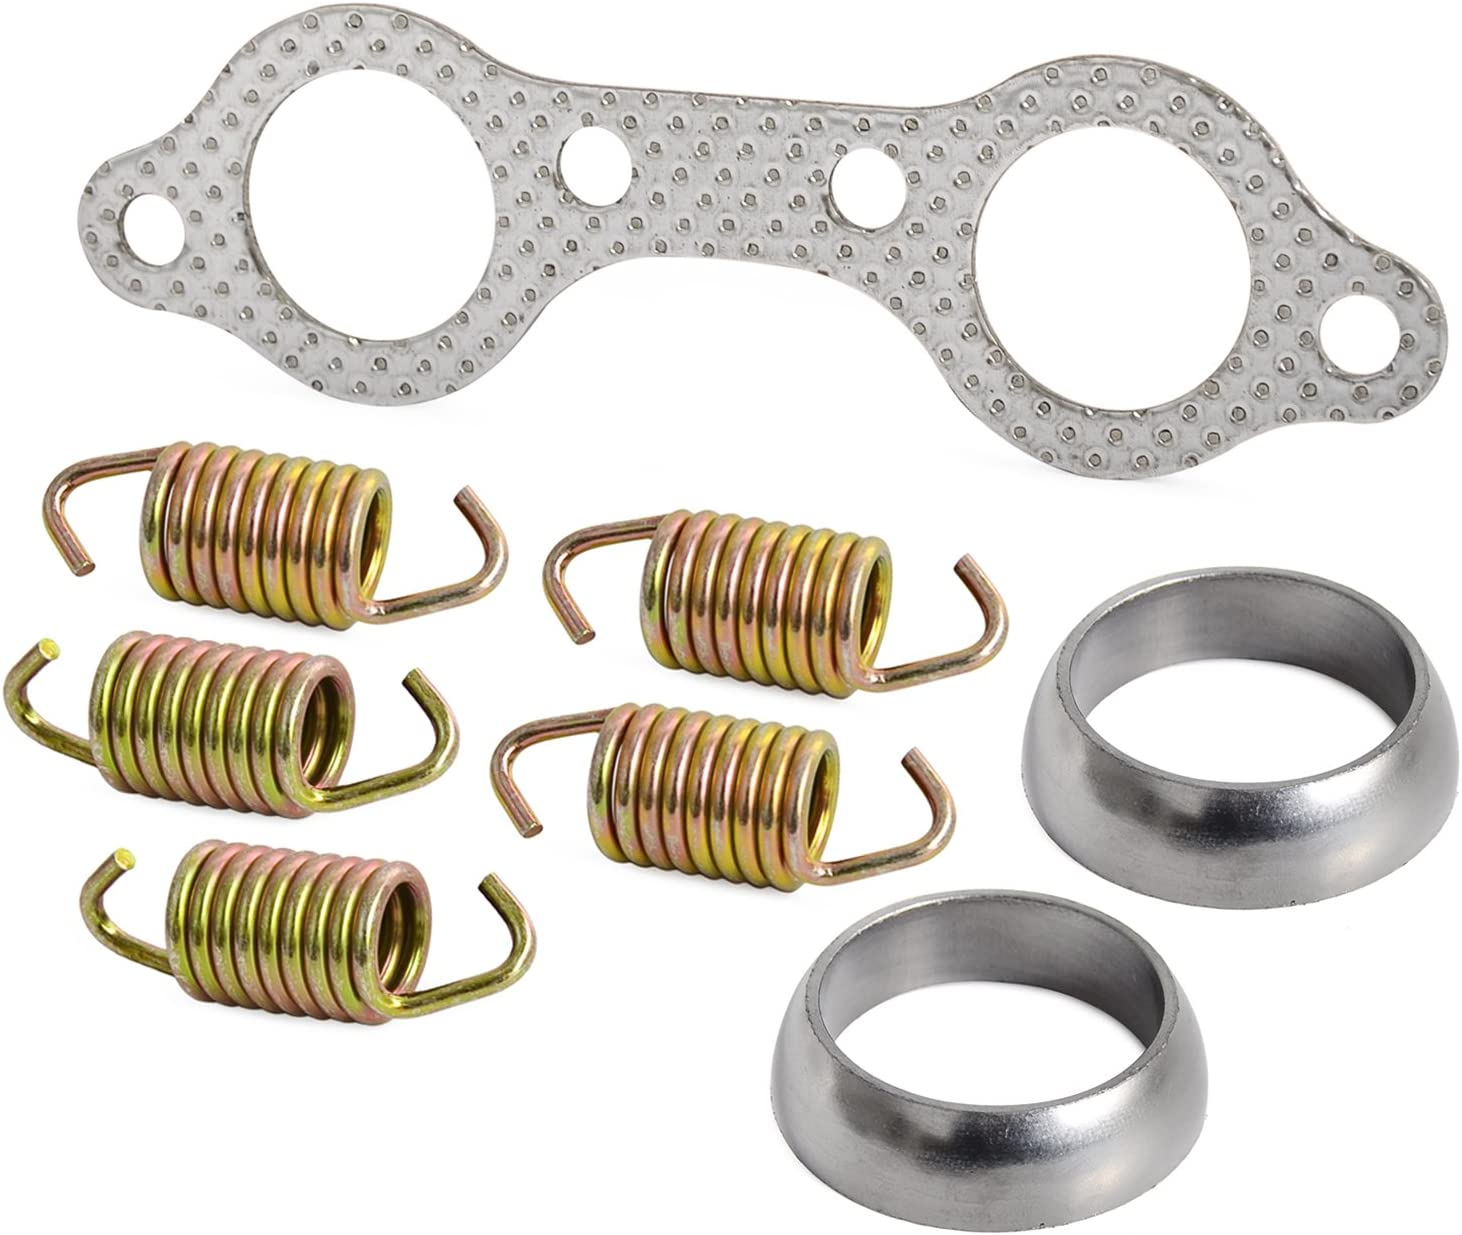 NICECNC New products National uniform free shipping world's highest quality popular Exhaust Pipe Manifold Gasket Kit Rebuild Compatib Spring